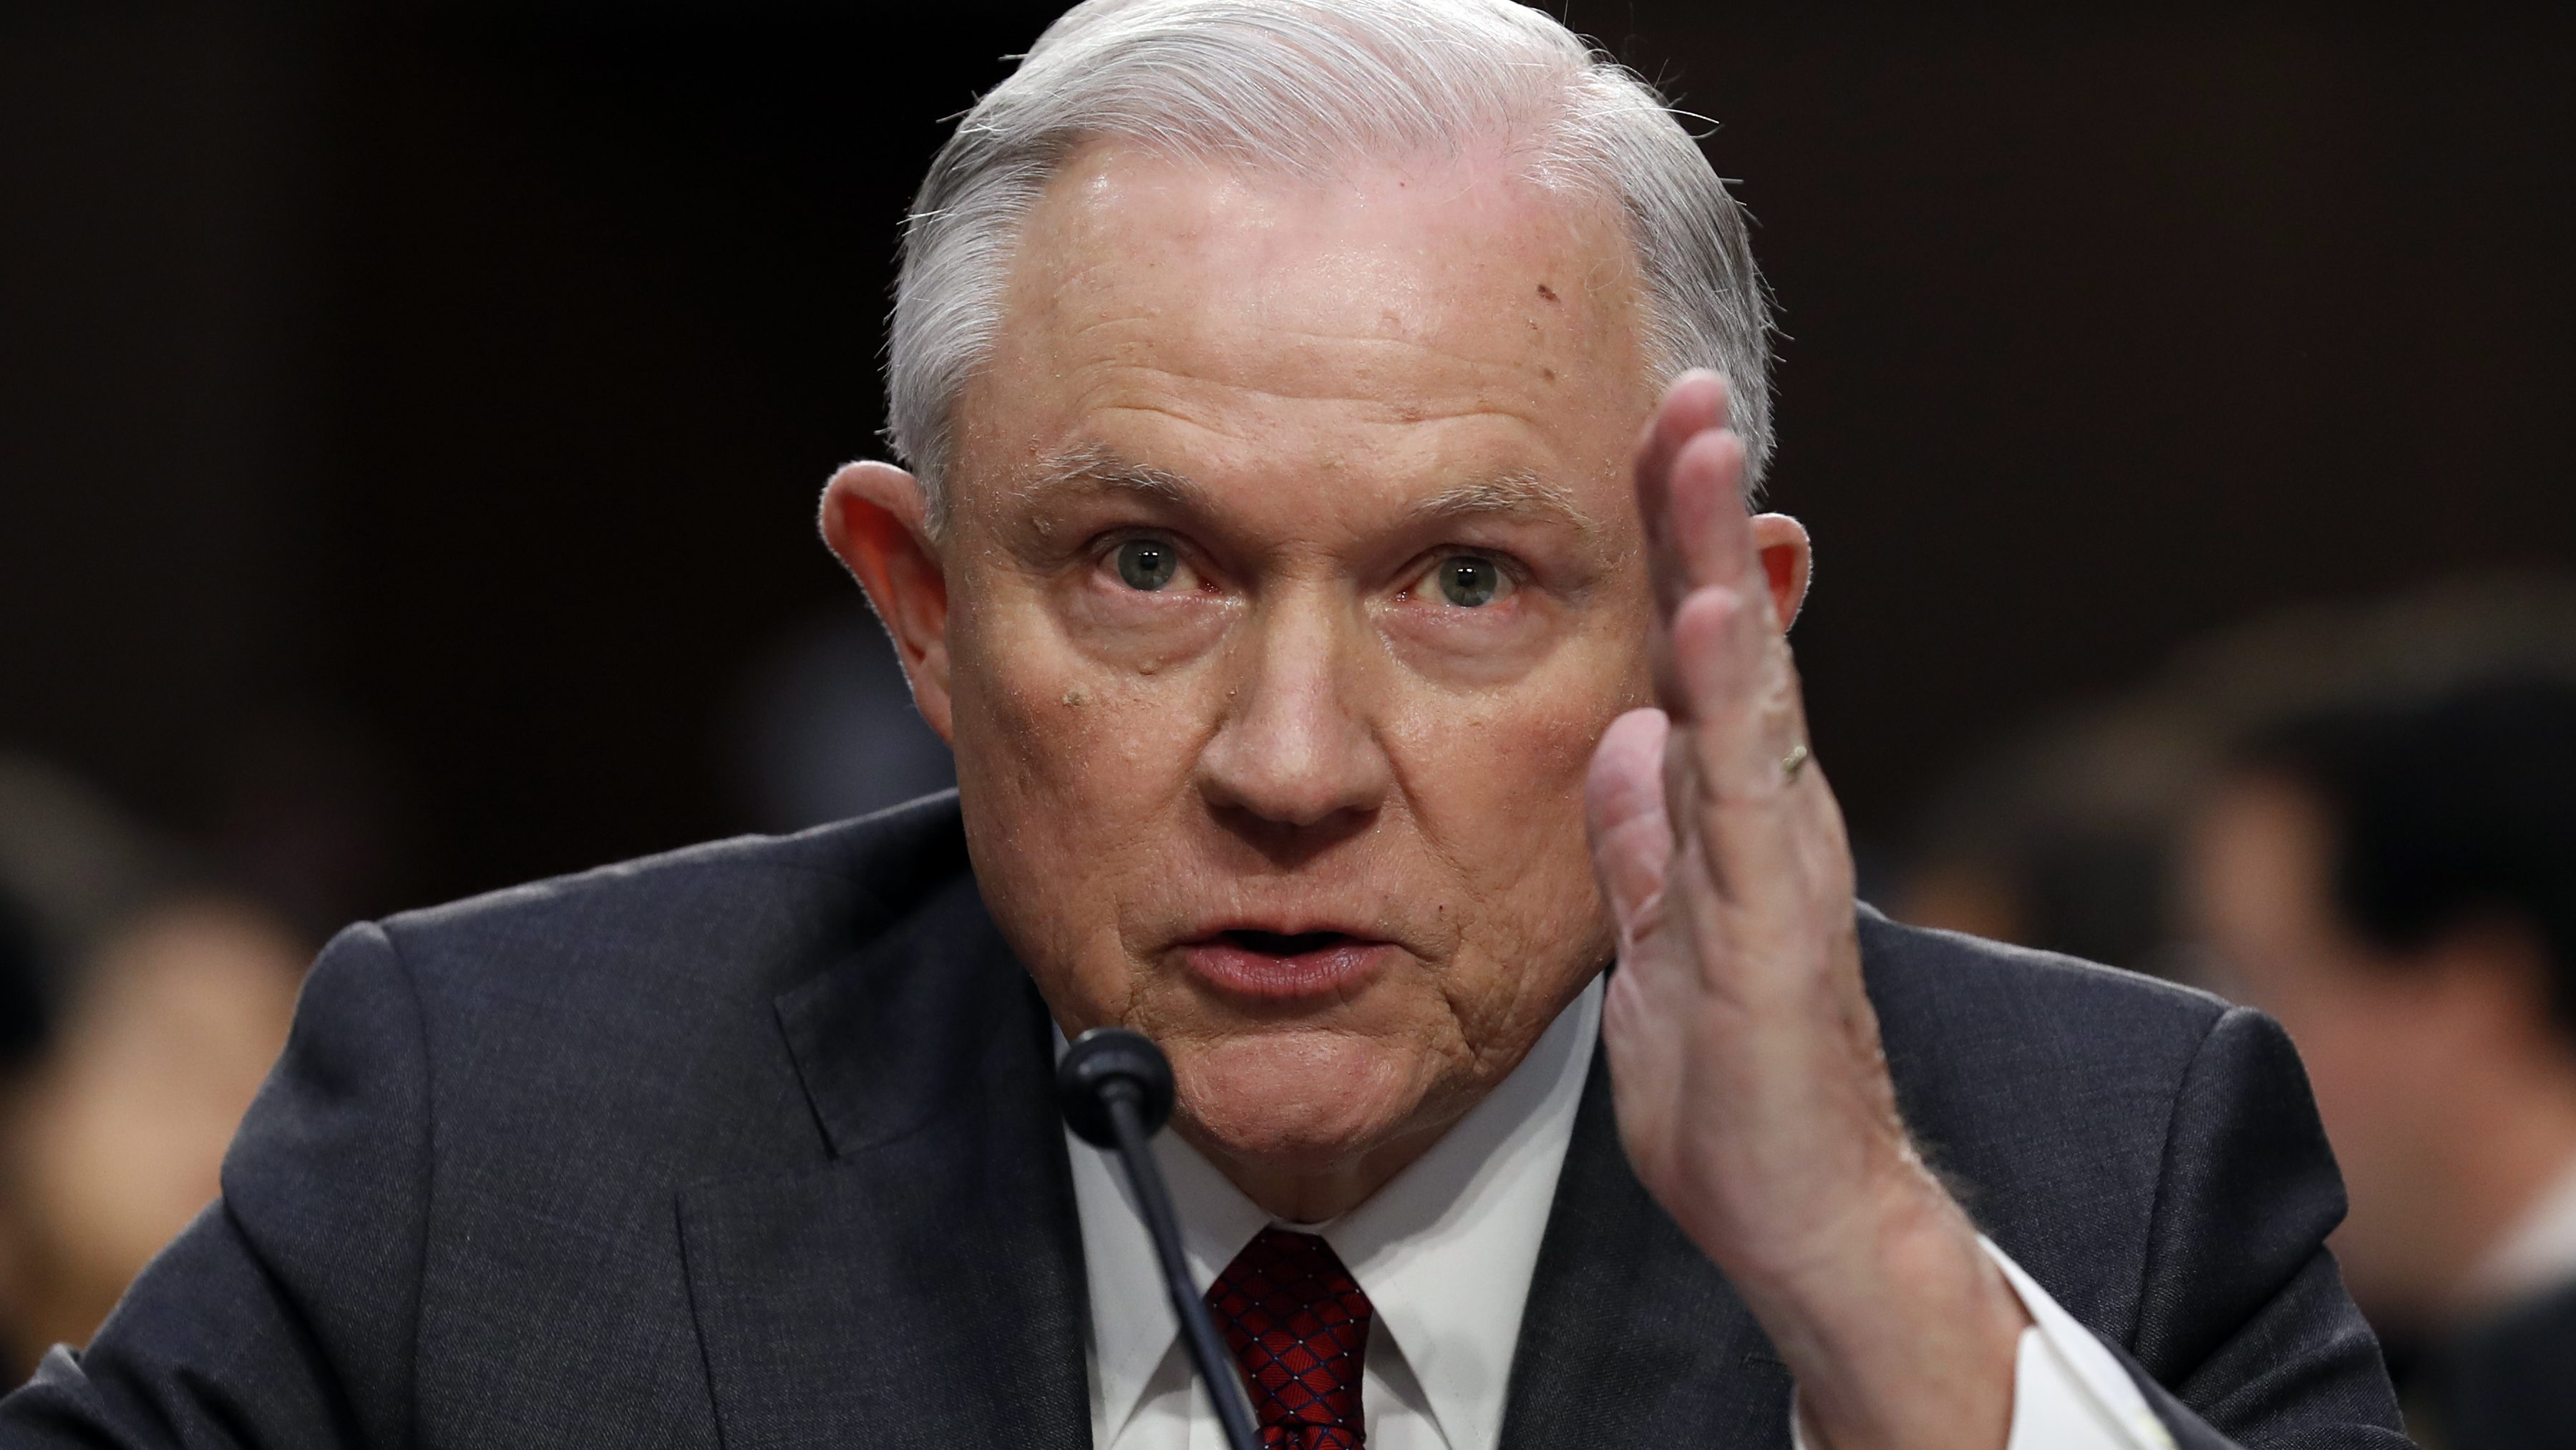 Attorney General Jeff Sessions testifies on Capitol Hill in Washington, Tuesday, June 13, 2017, before the Senate Intelligence Committee hearing about his role in the firing of James Comey, his Russian contacts during the campaign and his decision to recuse from an investigation into possible ties between Moscow and associates of President Donald Trump. (AP Photo/Alex Brandon)